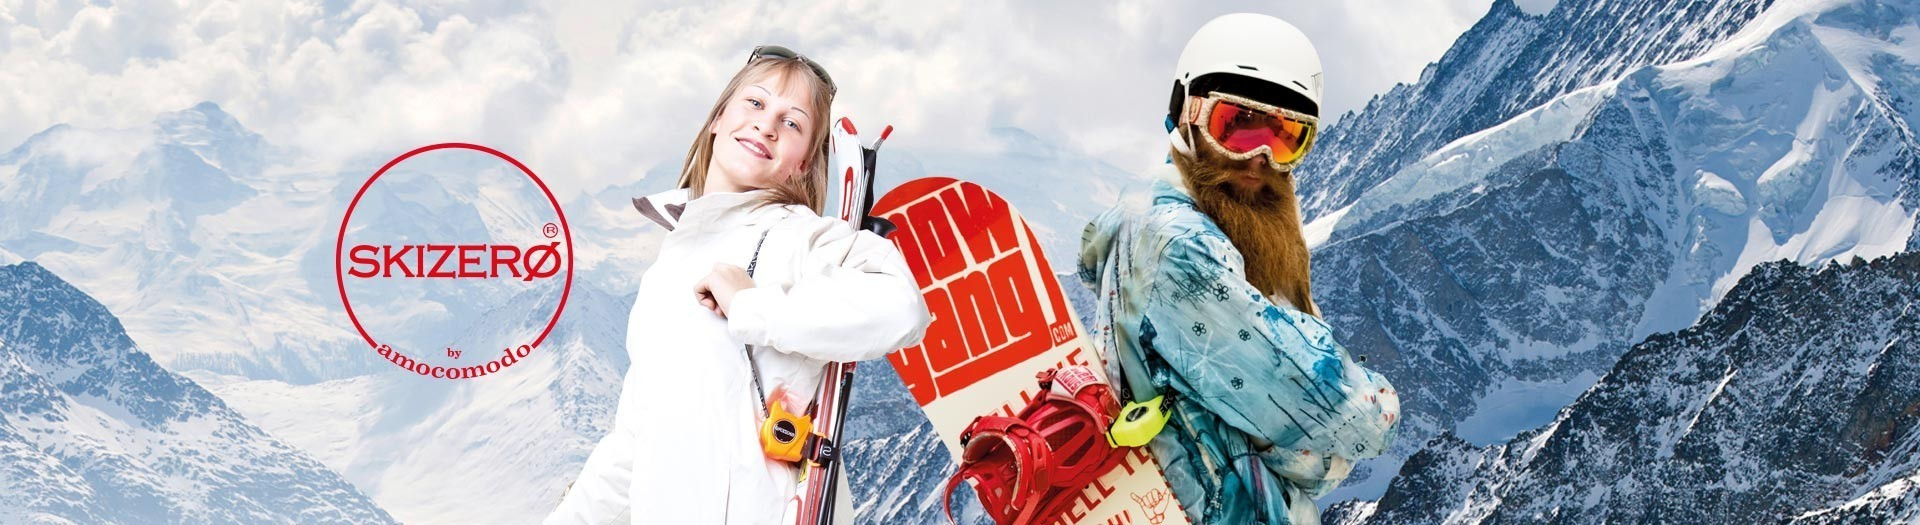 SKIZERO and SKIZEROSNOWBOARD by amocomodo